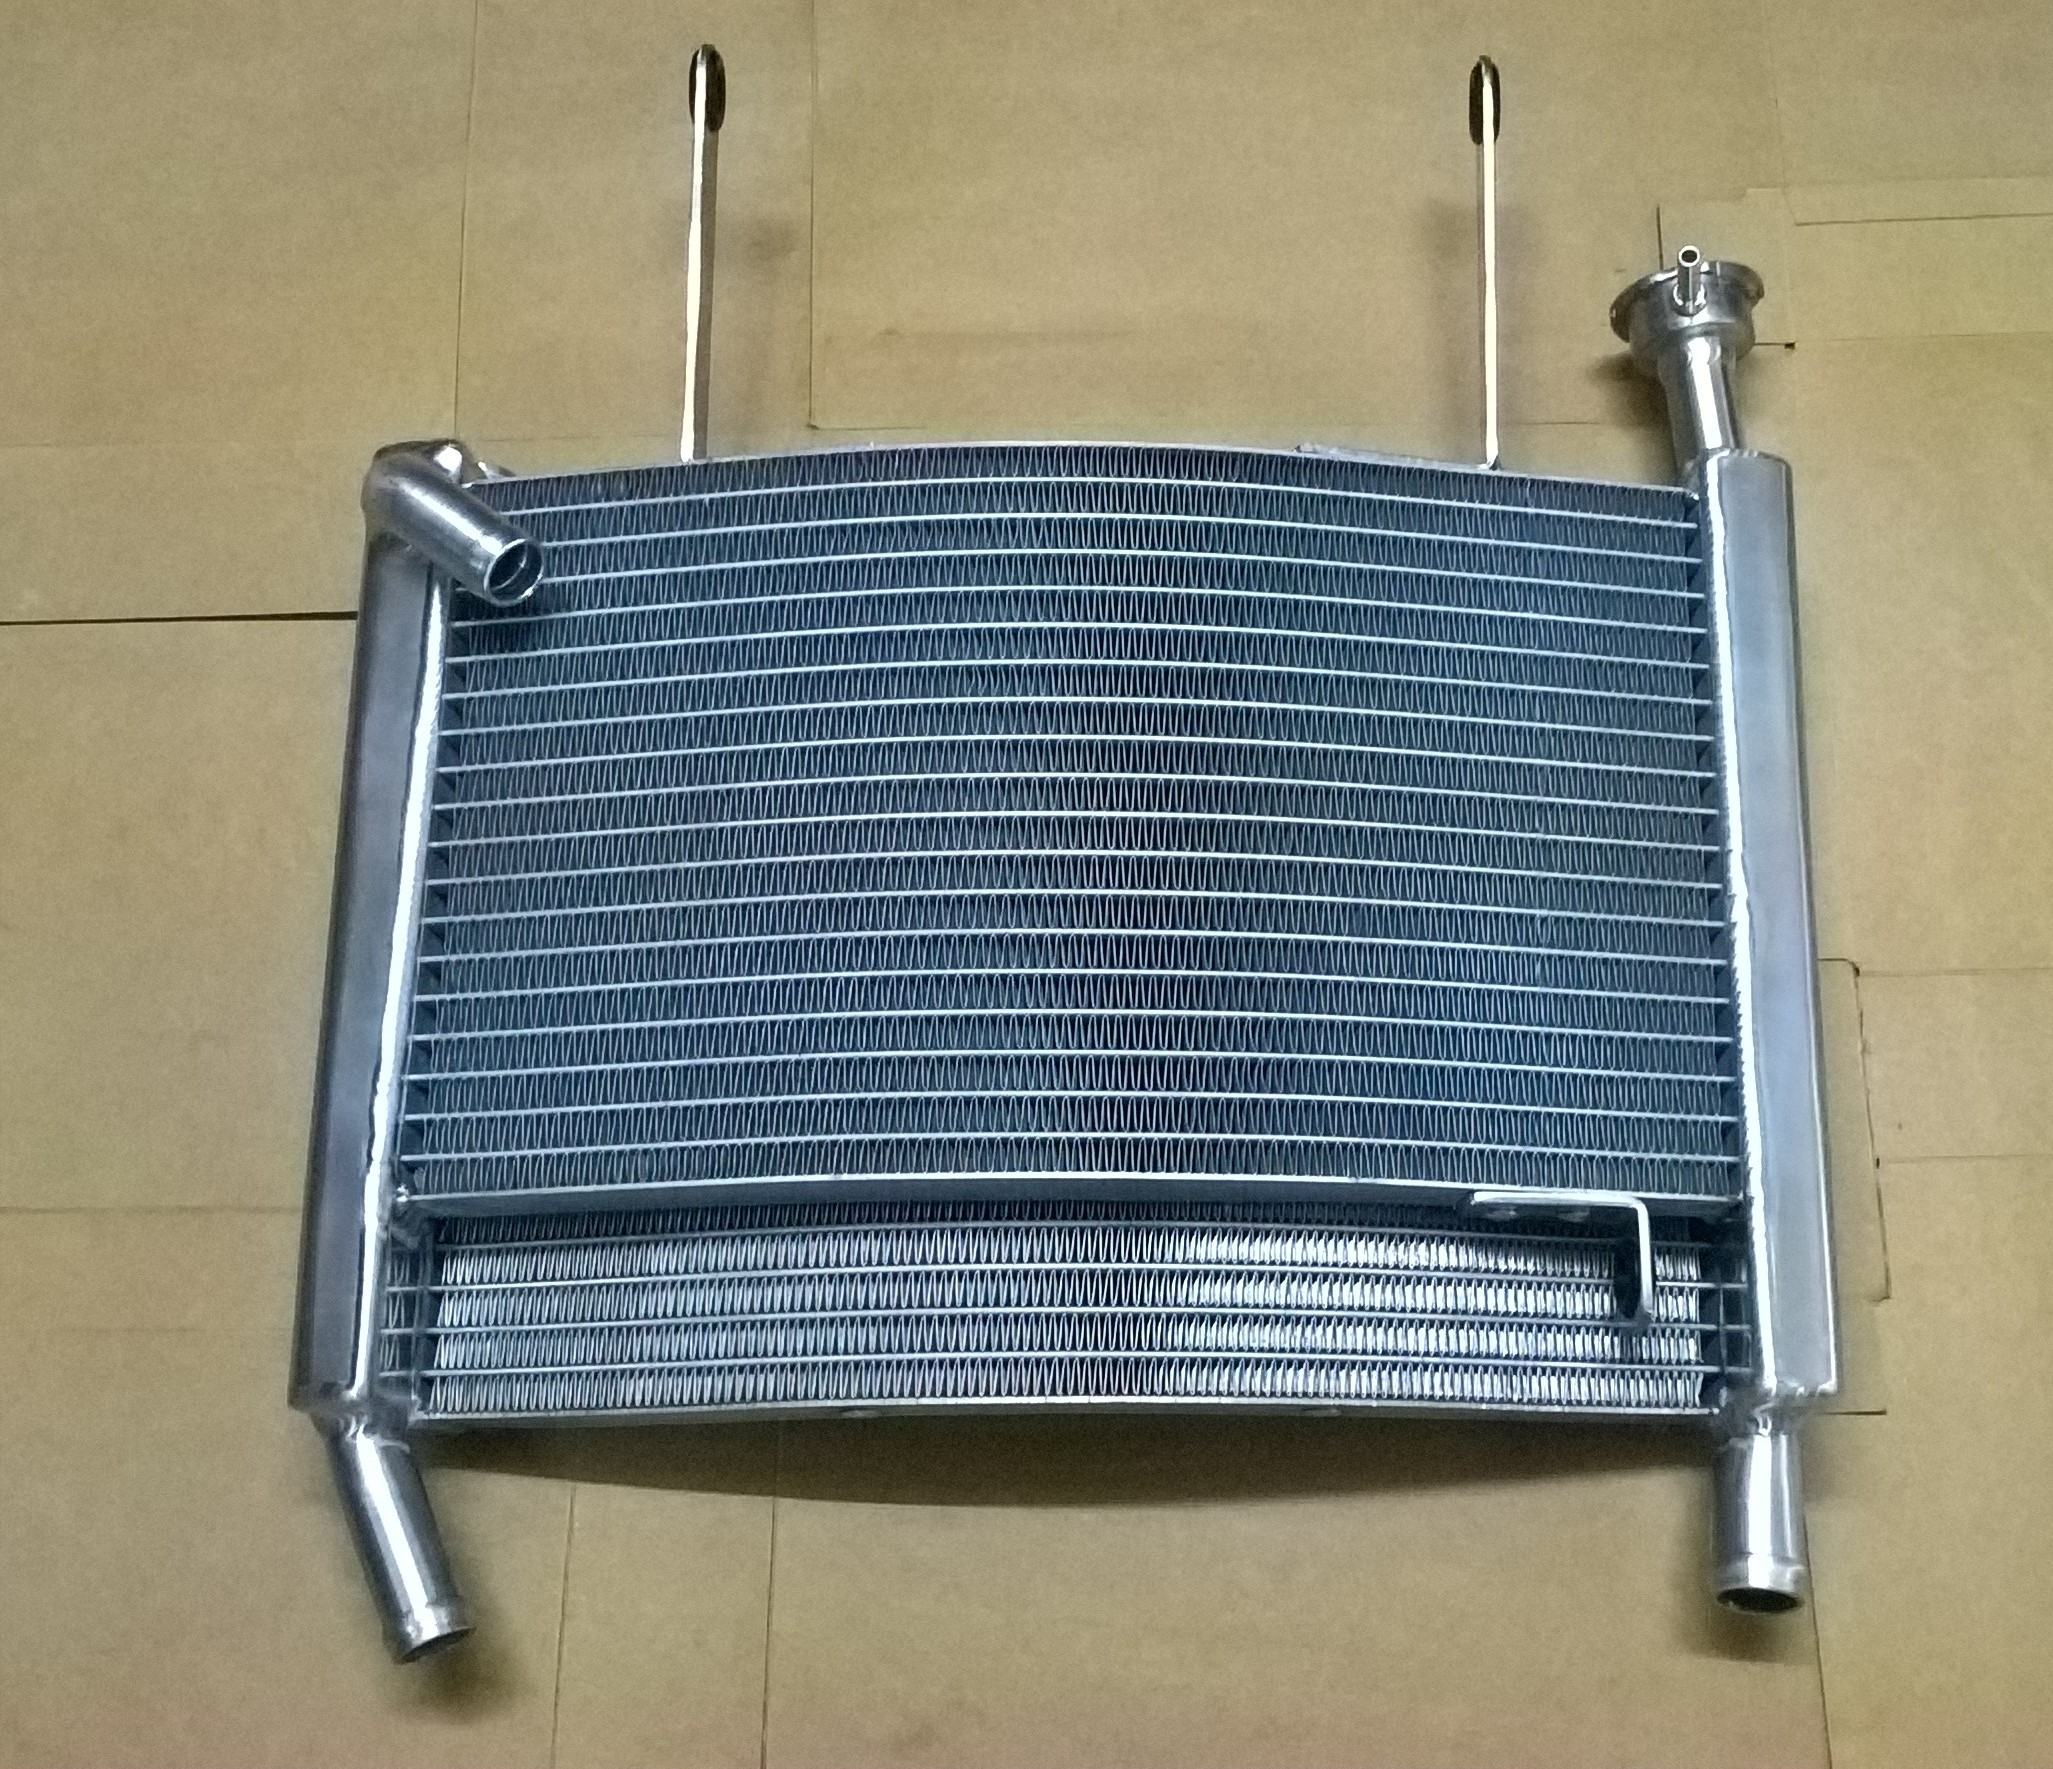 RS250 Radiator Intake Under Yoke Pic1